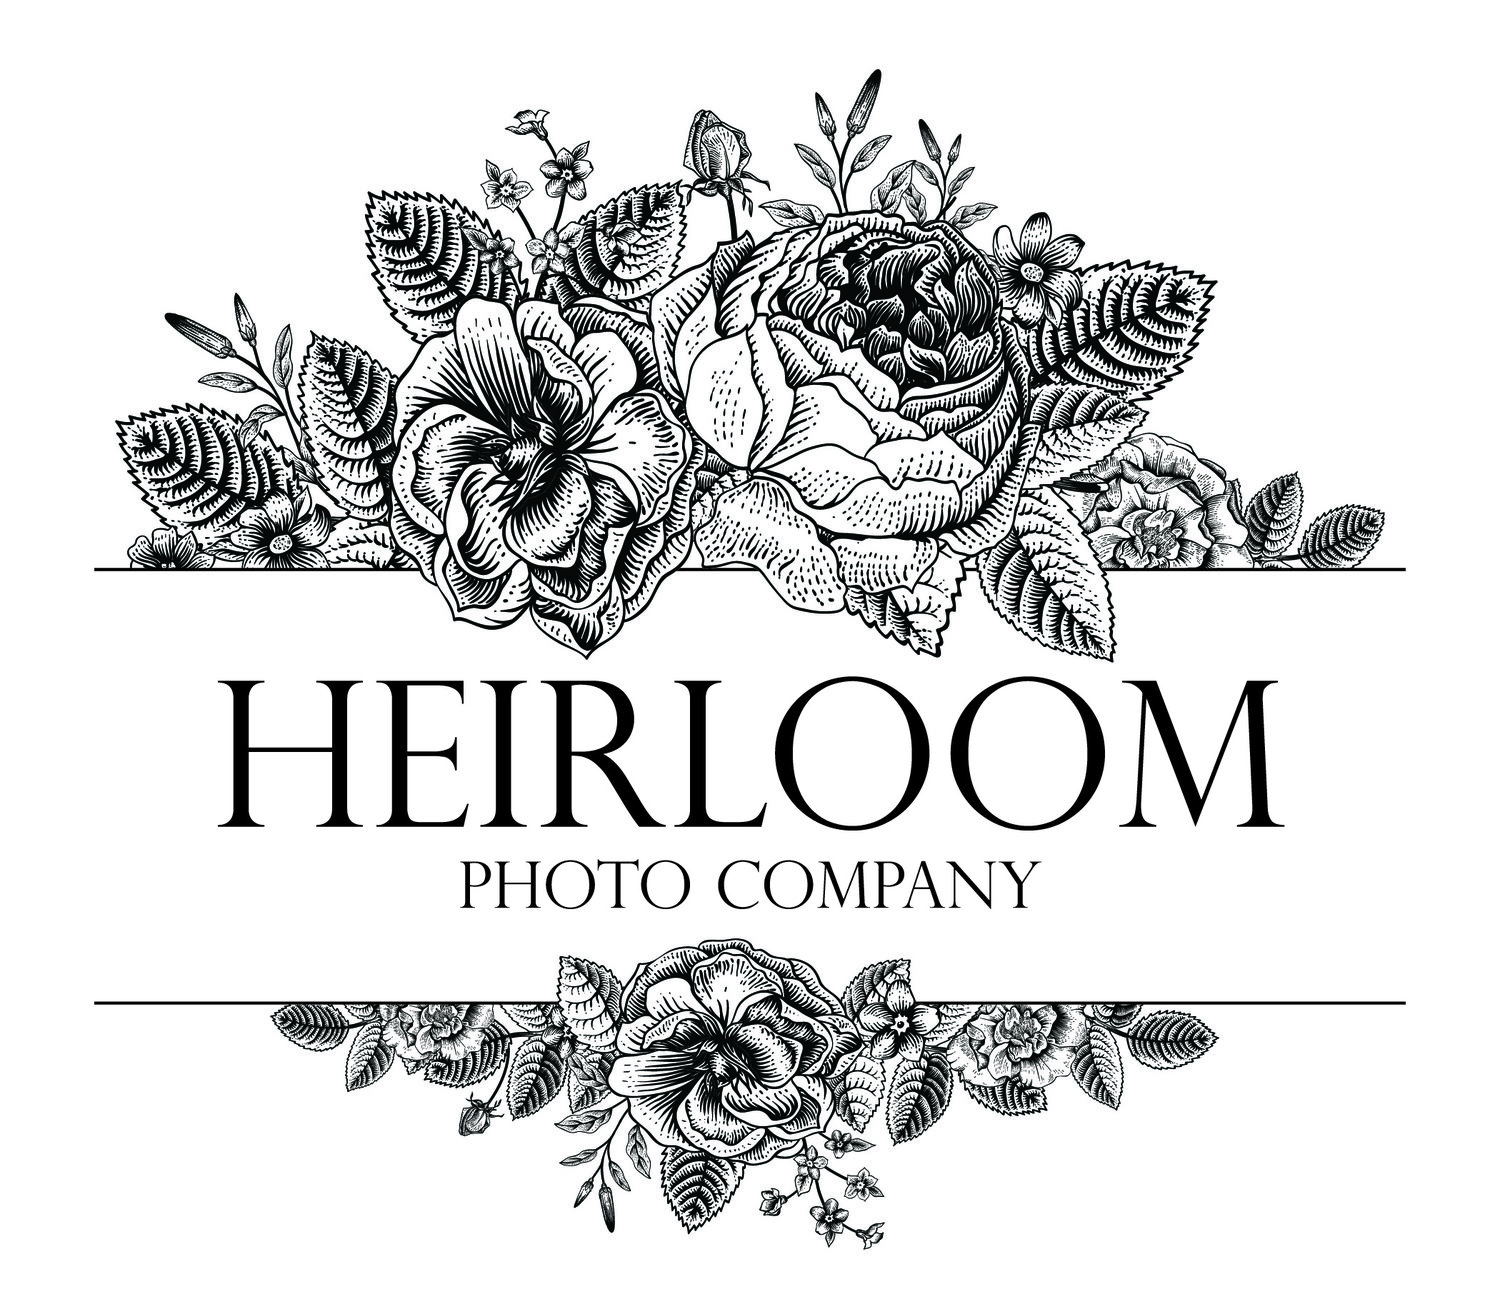 Heirloom Photo Company